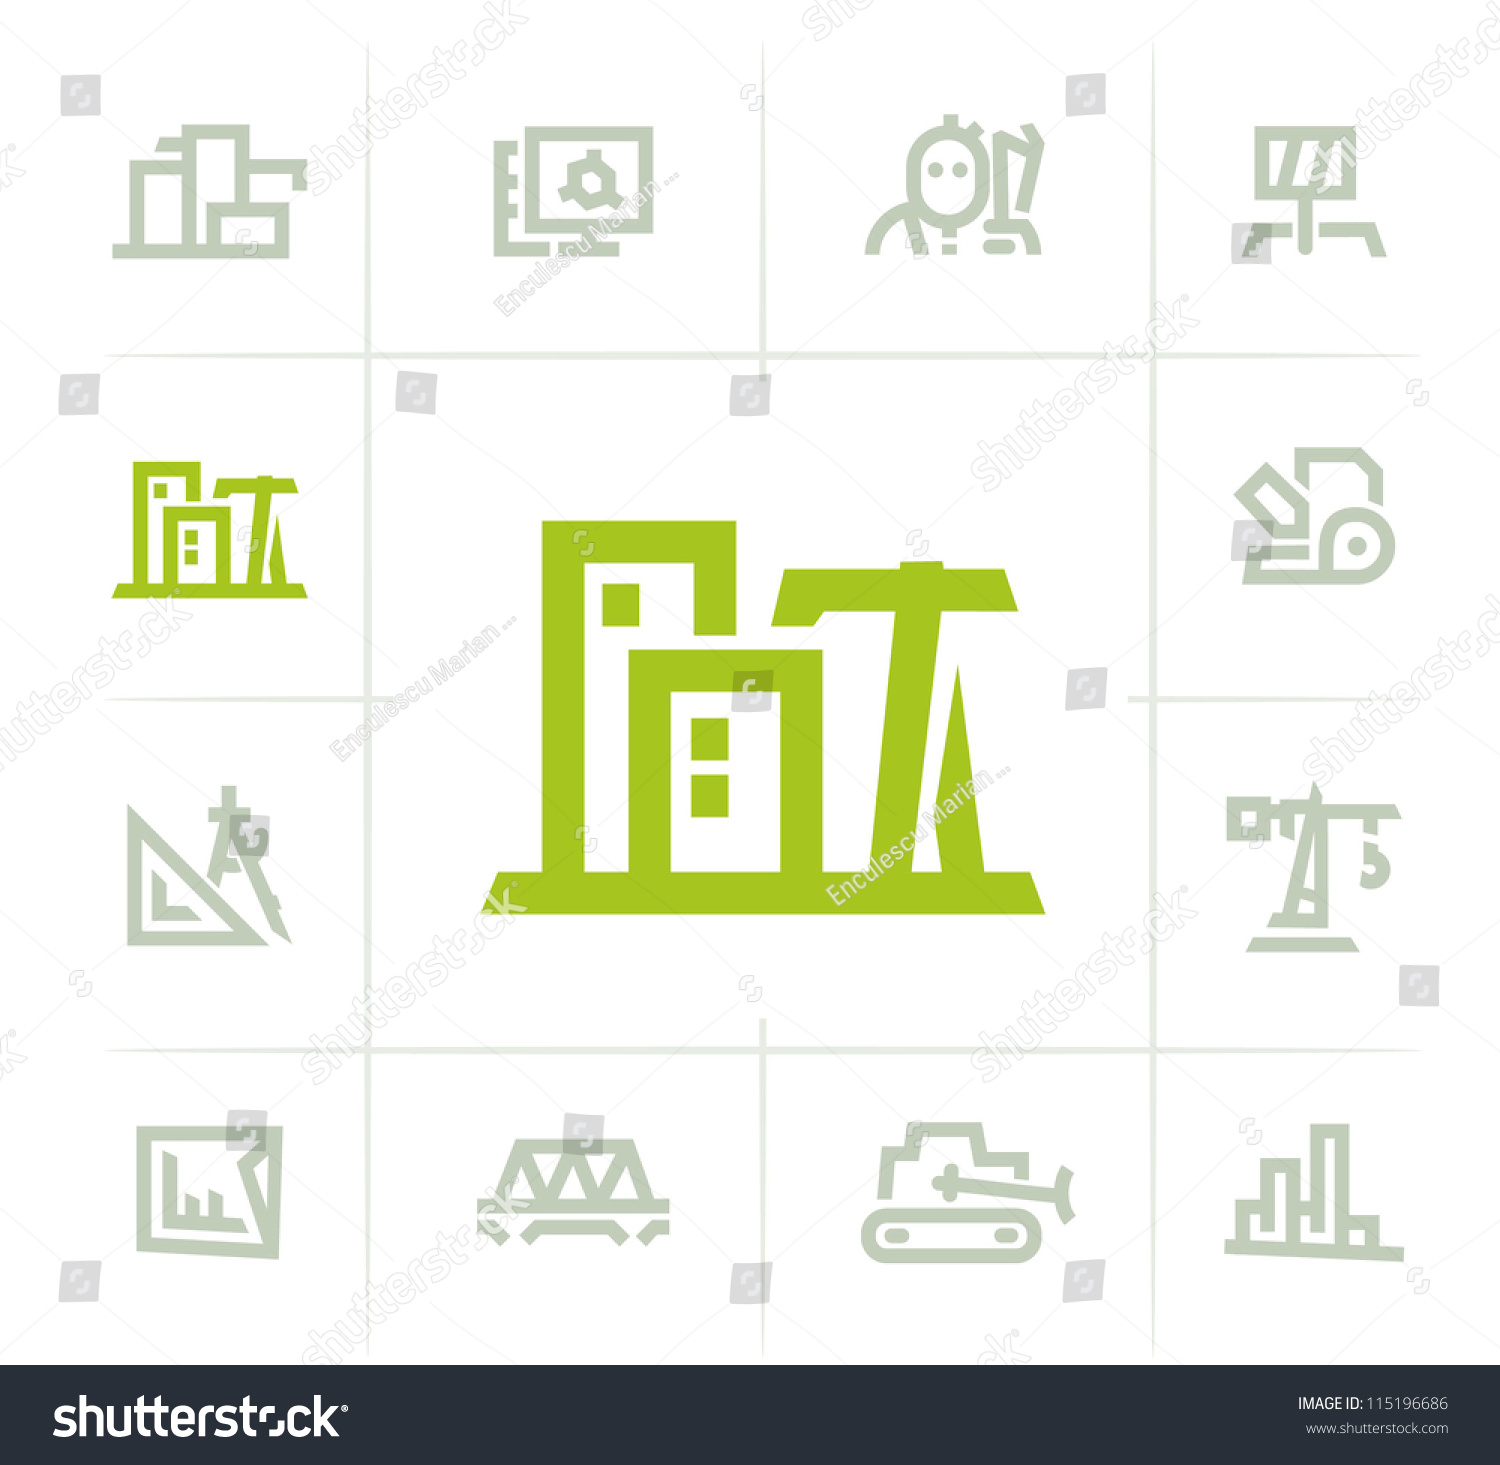 Architecture icons stock vector 115196686 shutterstock for Architecture icon